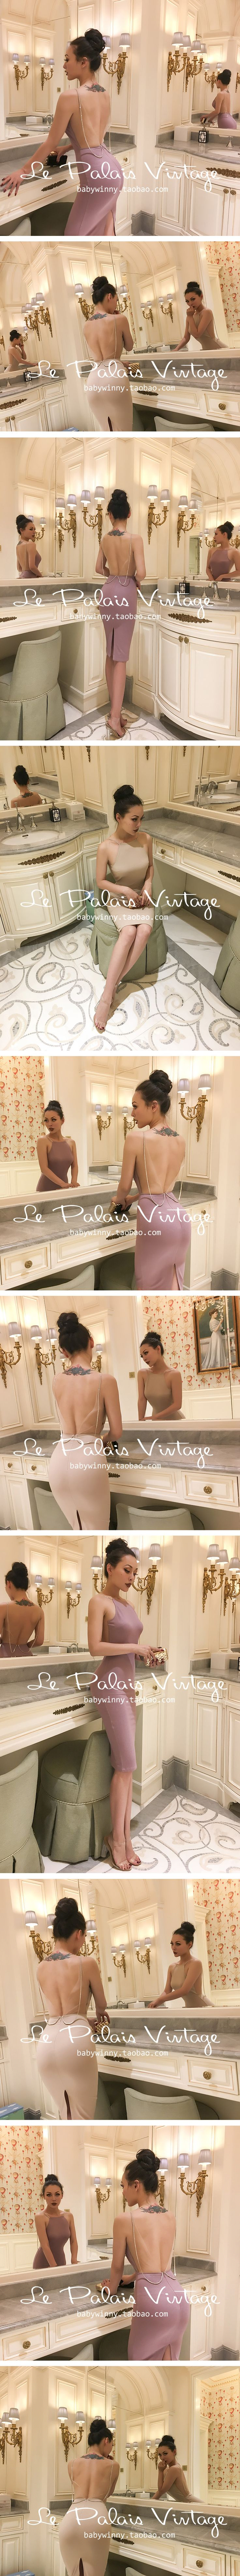 Aliexpress.com : Buy le palais vintage 2017 Summer Very Sexy Backless Diamonds Dress Sheath Pullover Type See Trough Mesh Fabric High Rise Sleevelss from Reliable diamond dress suppliers on Mr. and miss